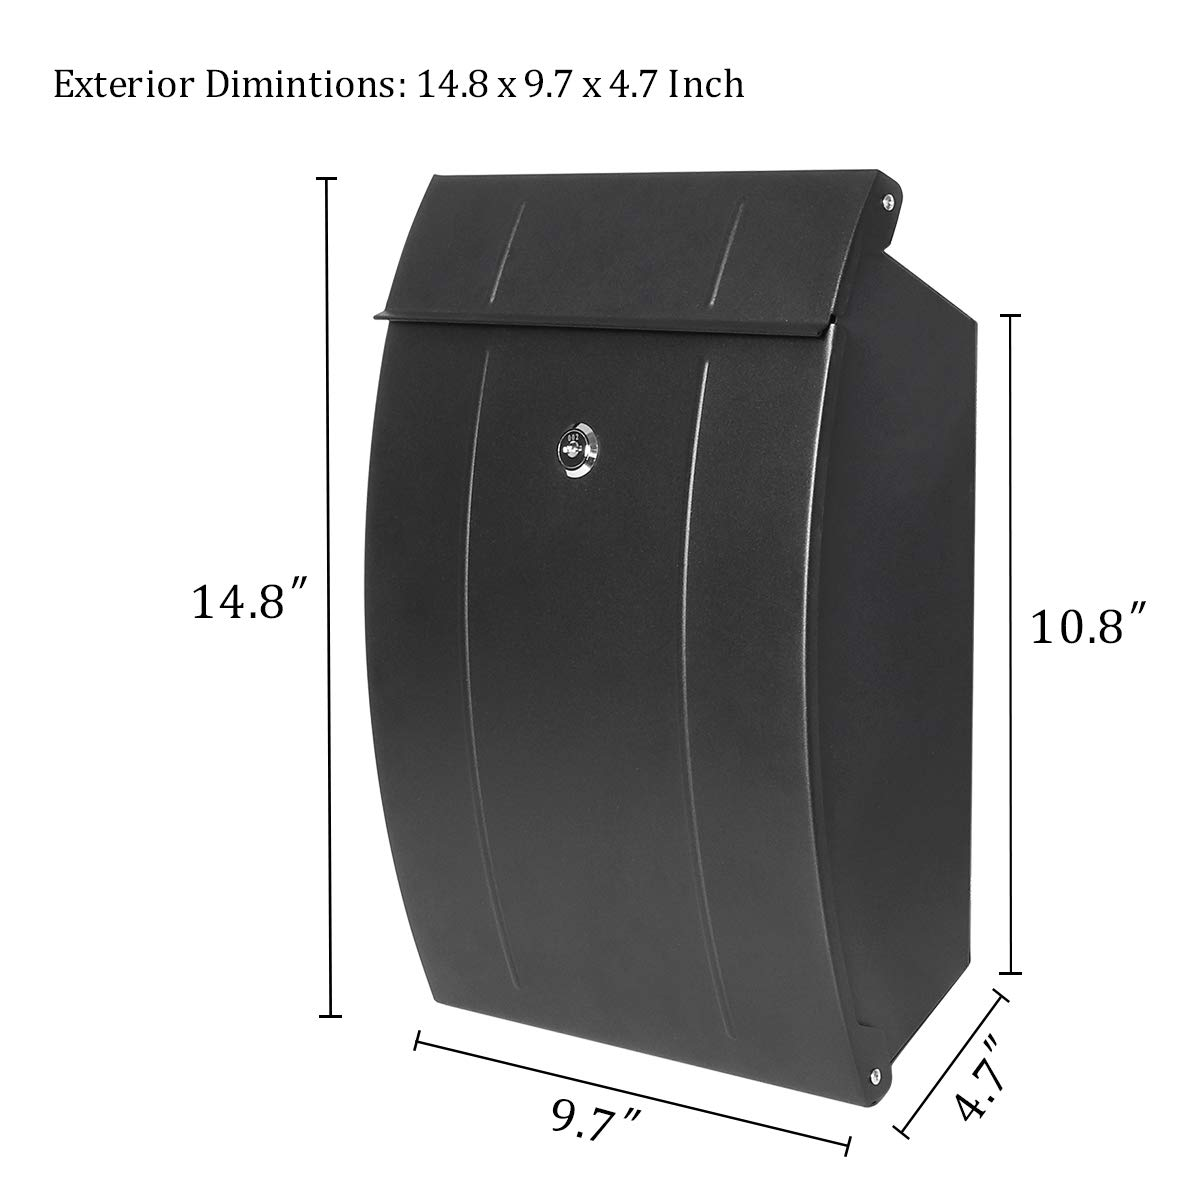 Amazon.com: Decaller Wall Mounted Mailboxes with Key Lock ...